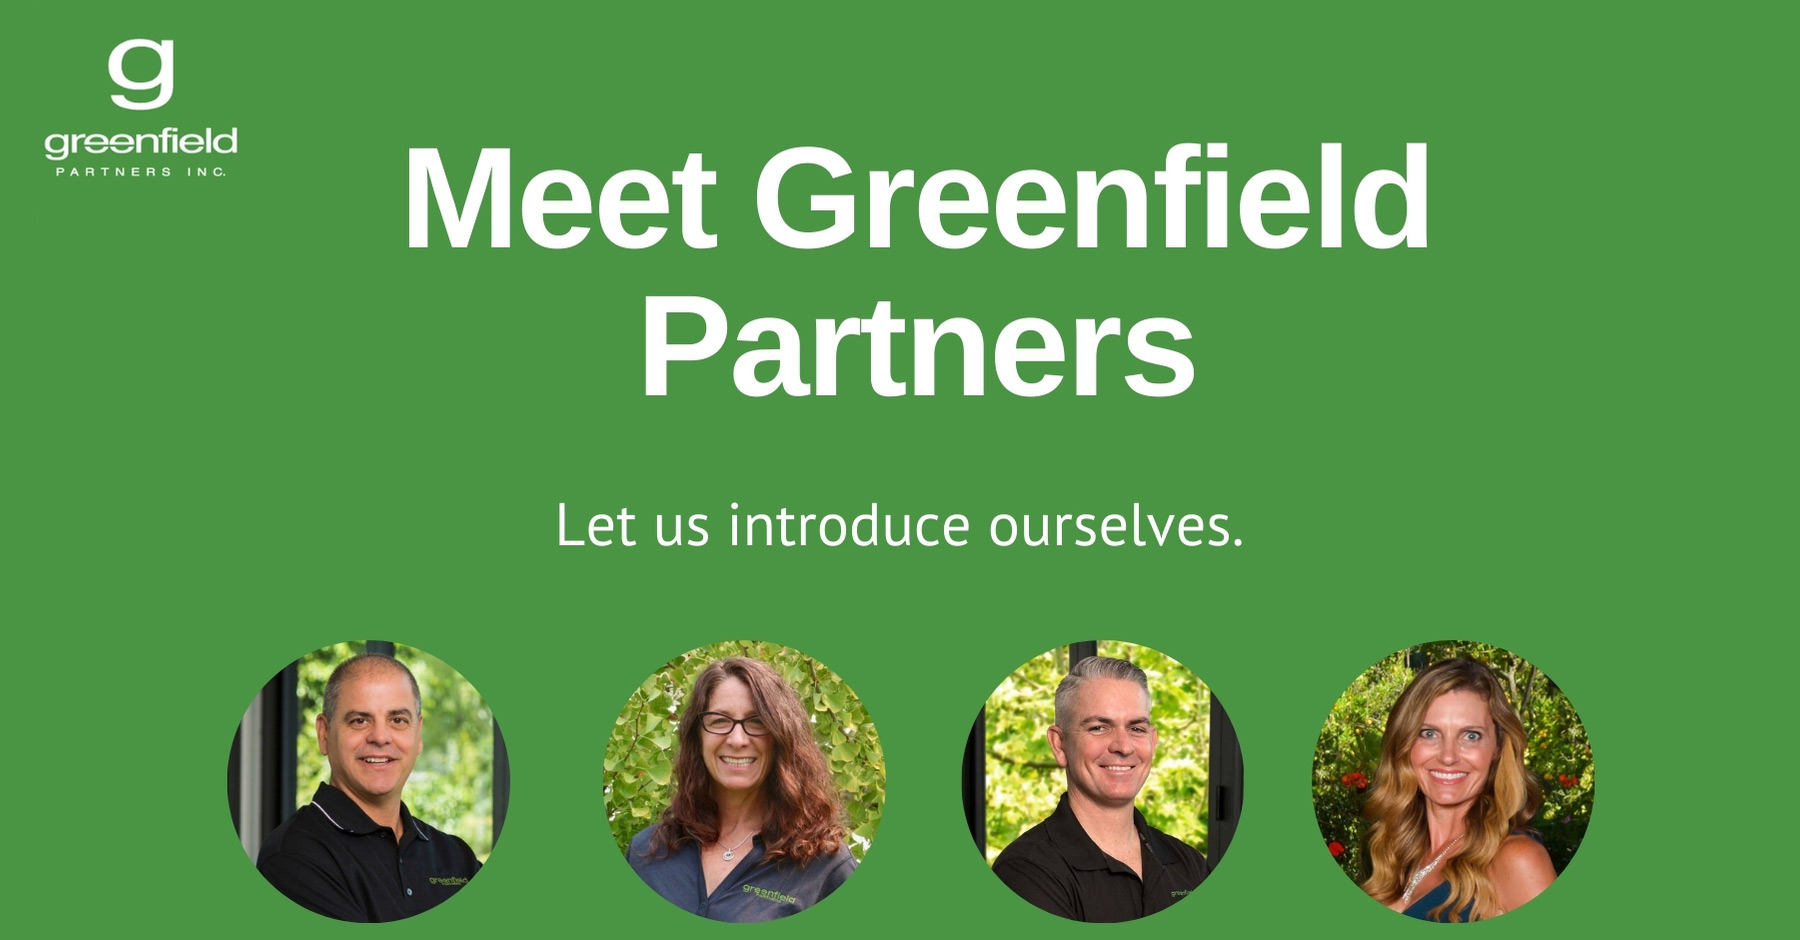 Let us Introduce Ourselves. Meet Greenfield Partners Inc.